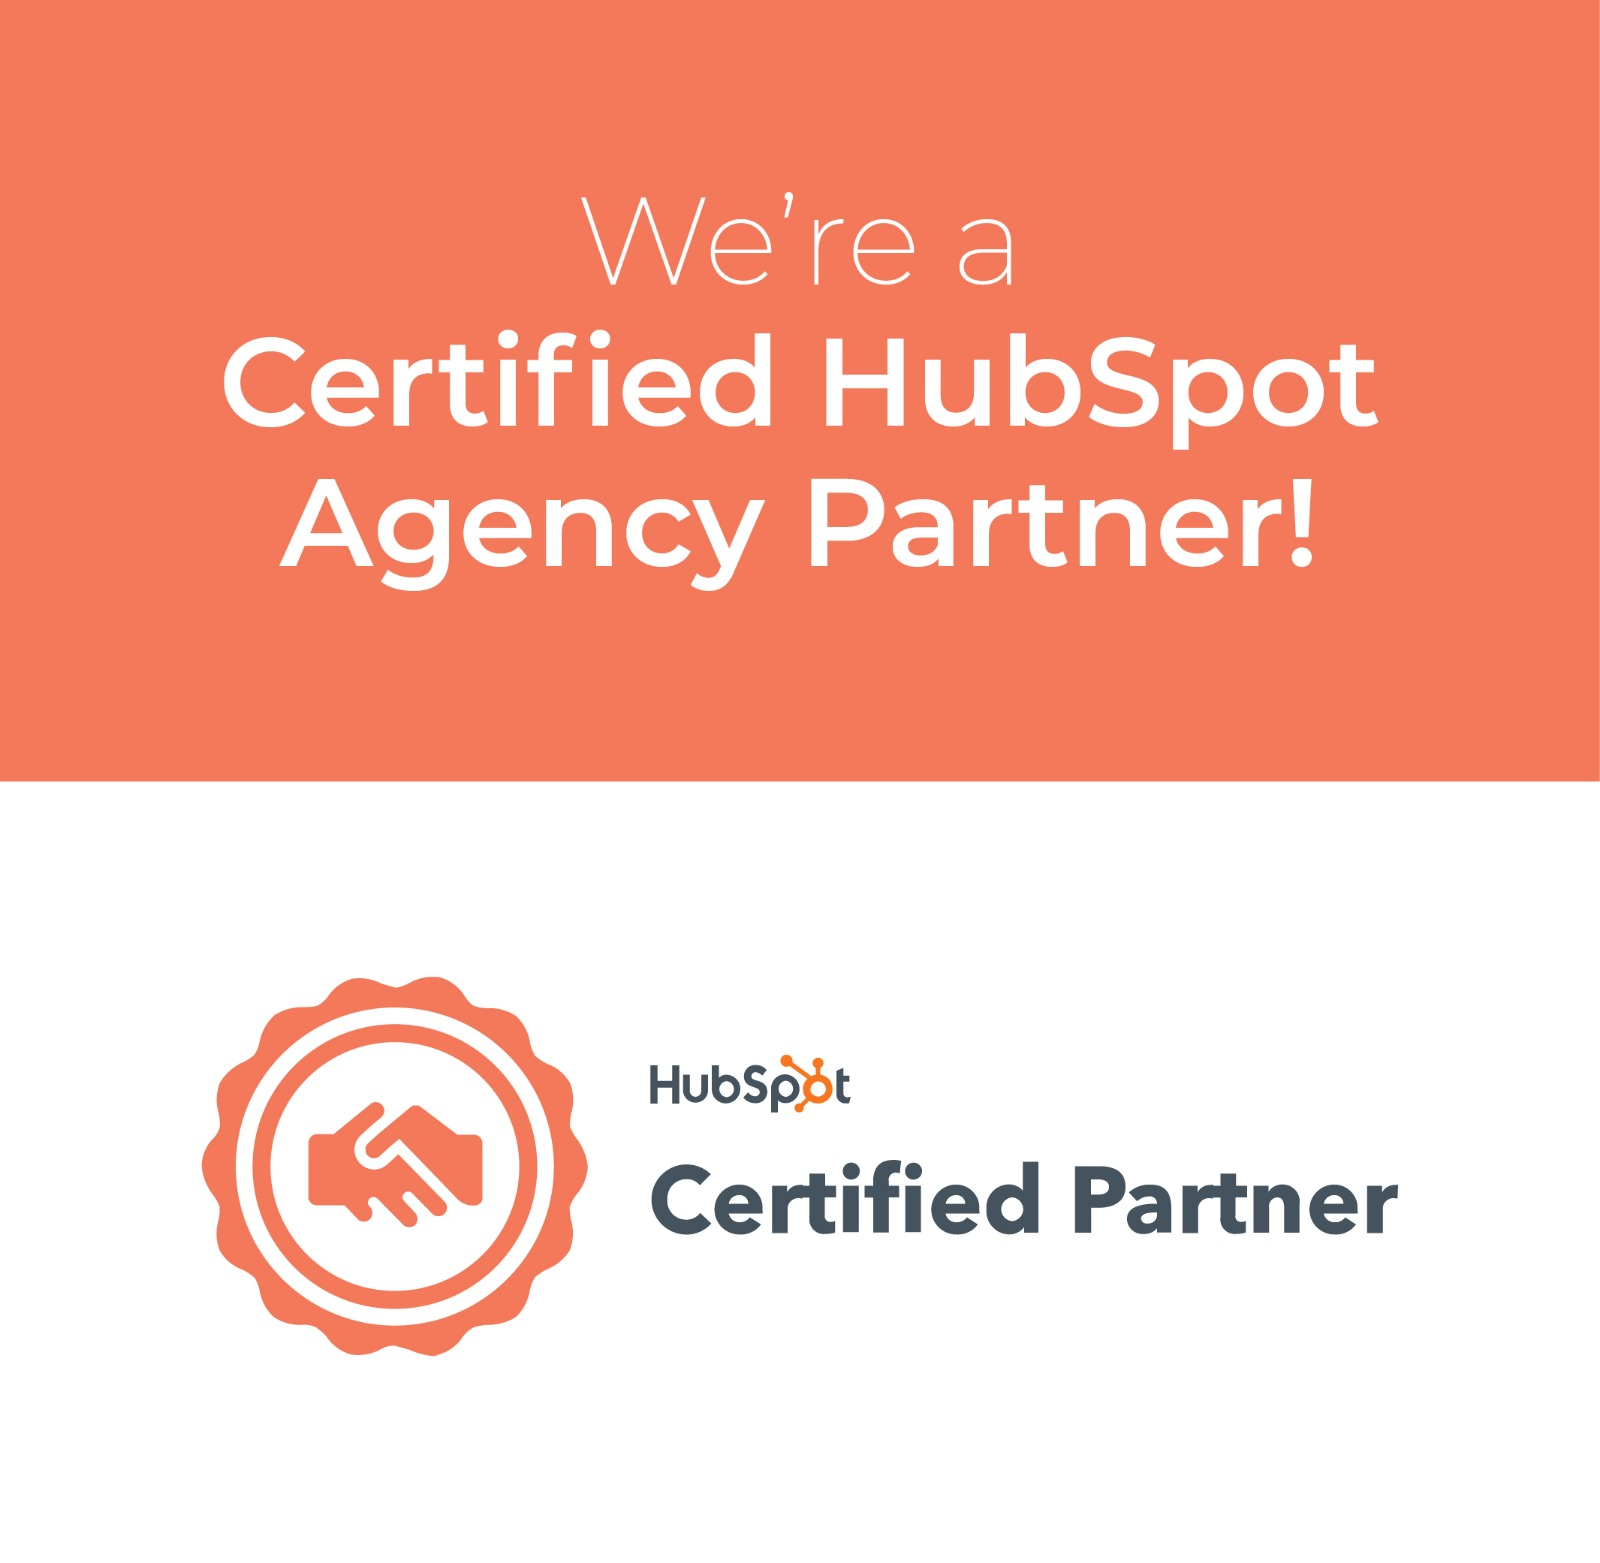 visible-one-hubsport-marketing-agency-partner